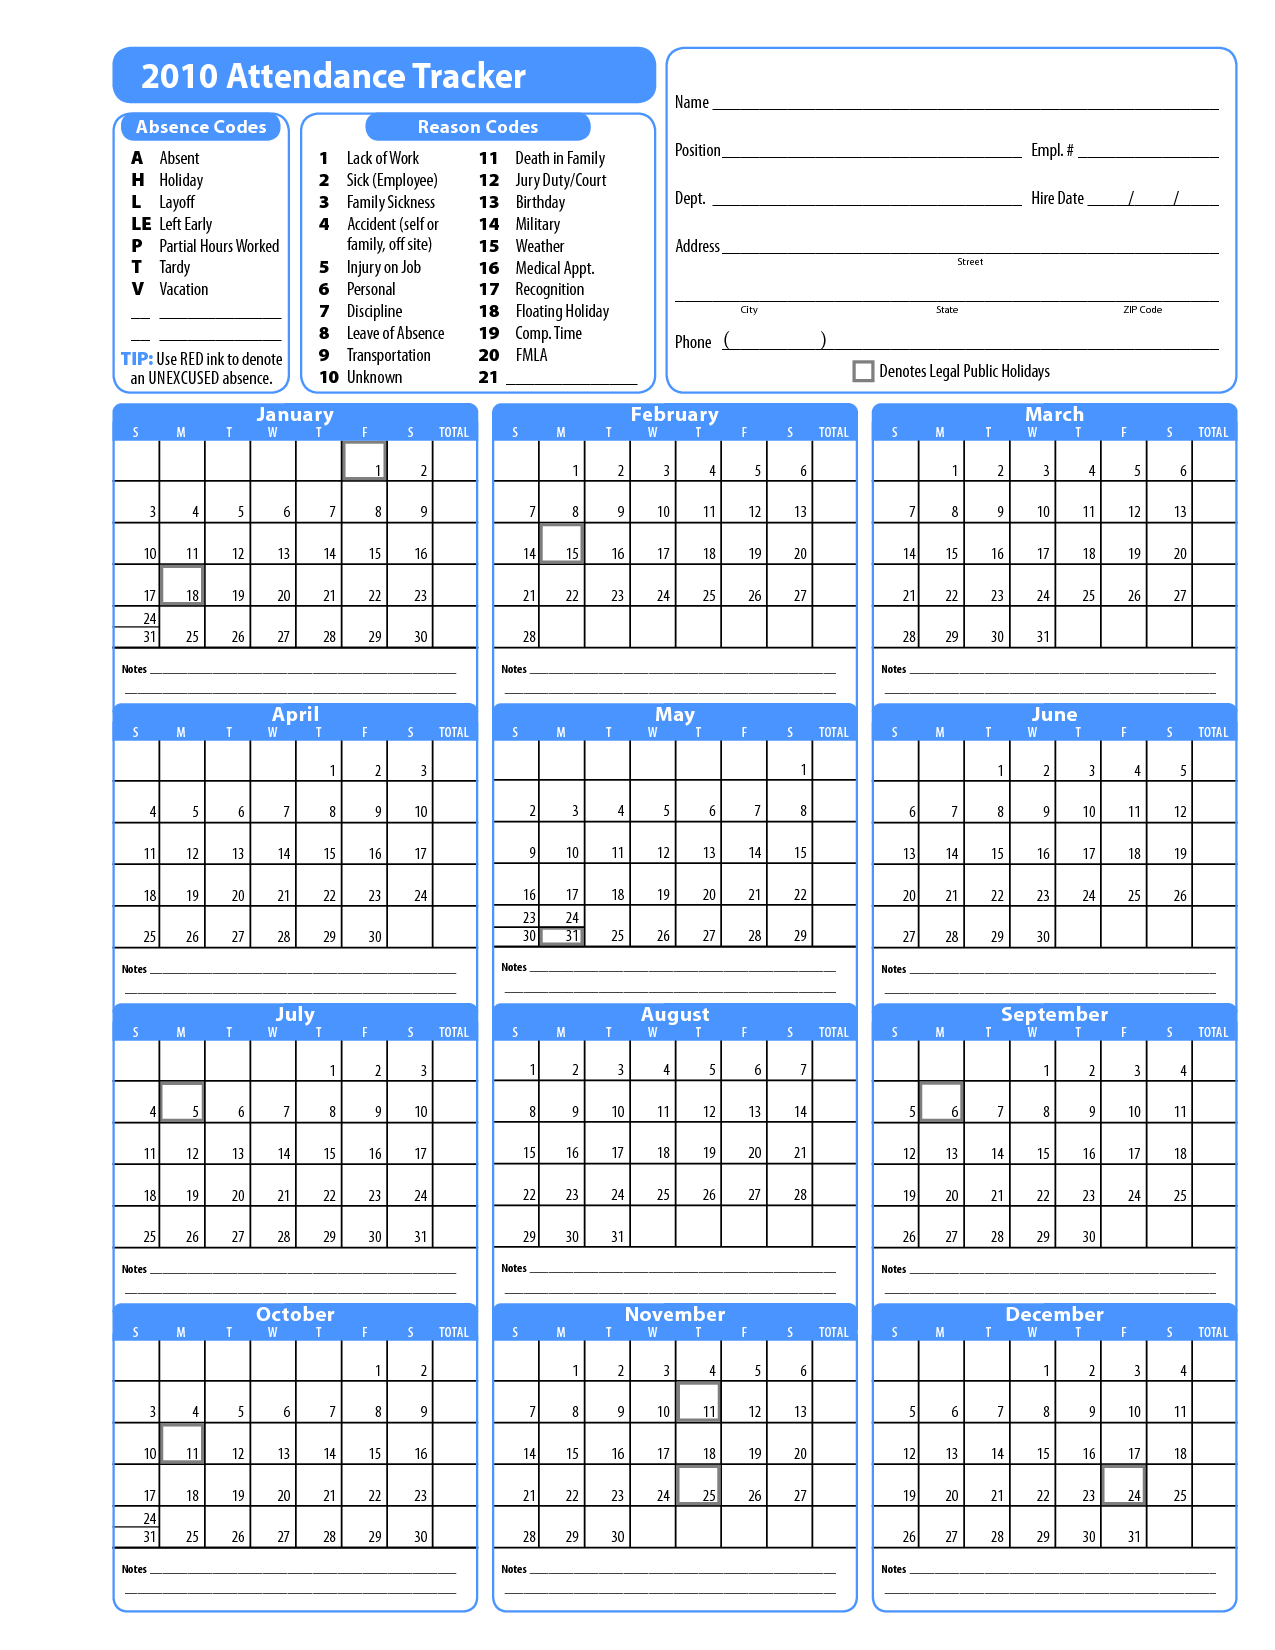 8 Best Images of Vacation Tracker Calendar 2016 Printable